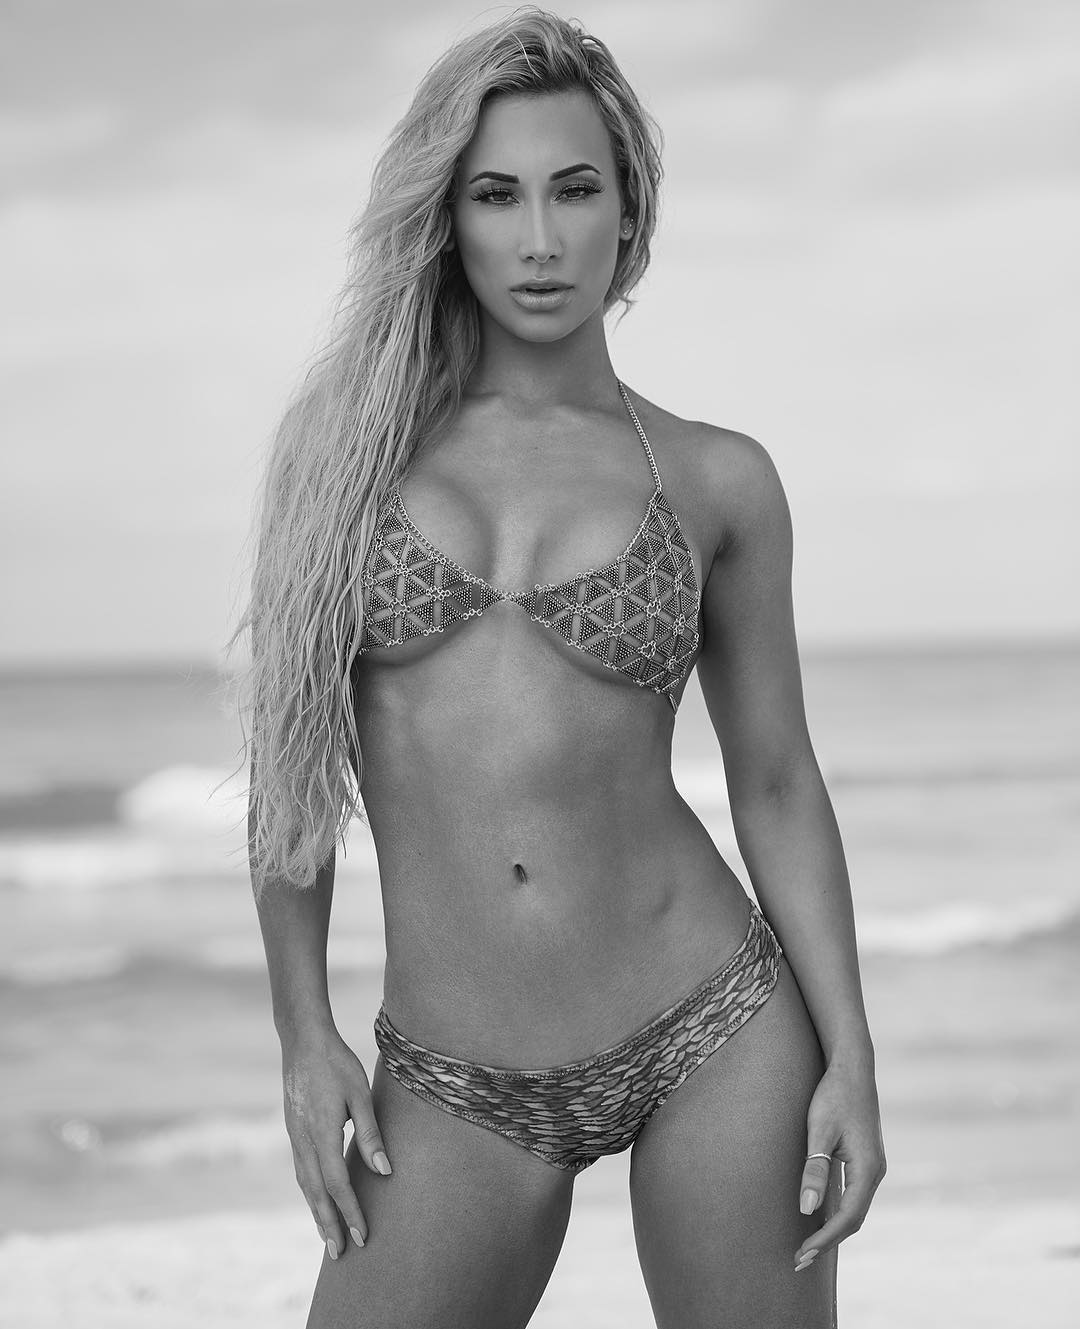 Who is carmella from wwe